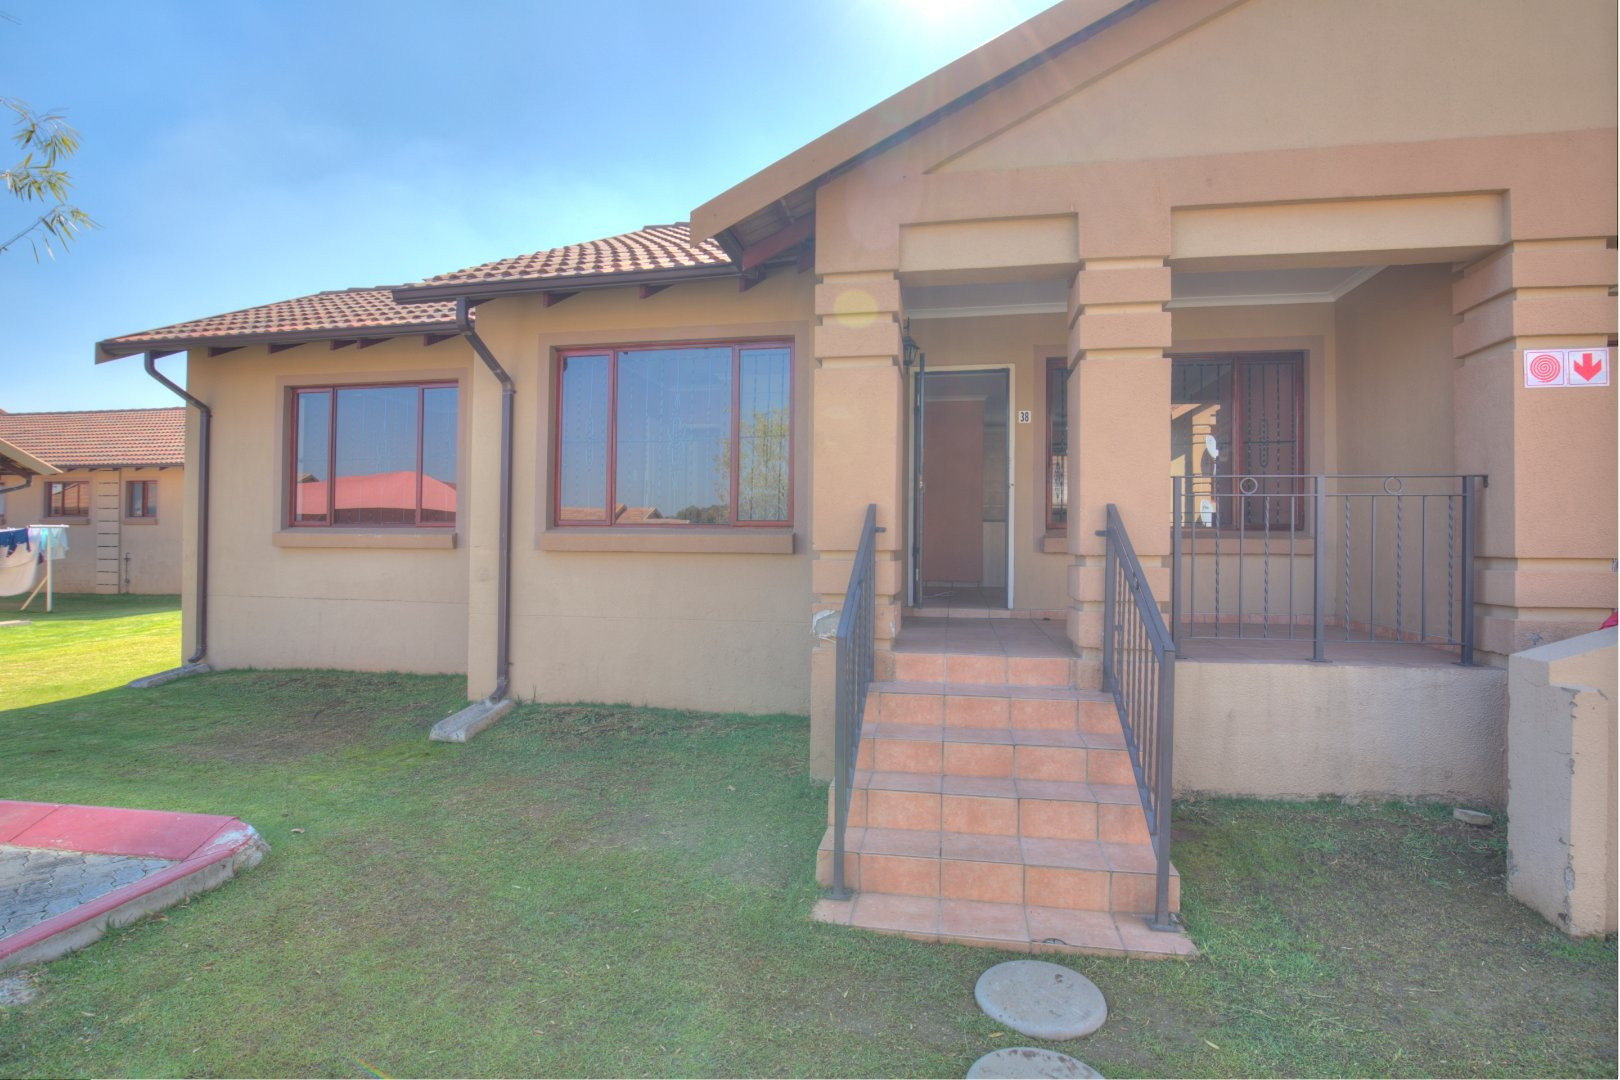 Johannesburg, Meredale Property  | Houses For Sale Meredale, Meredale, Townhouse 3 bedrooms property for sale Price:820,000